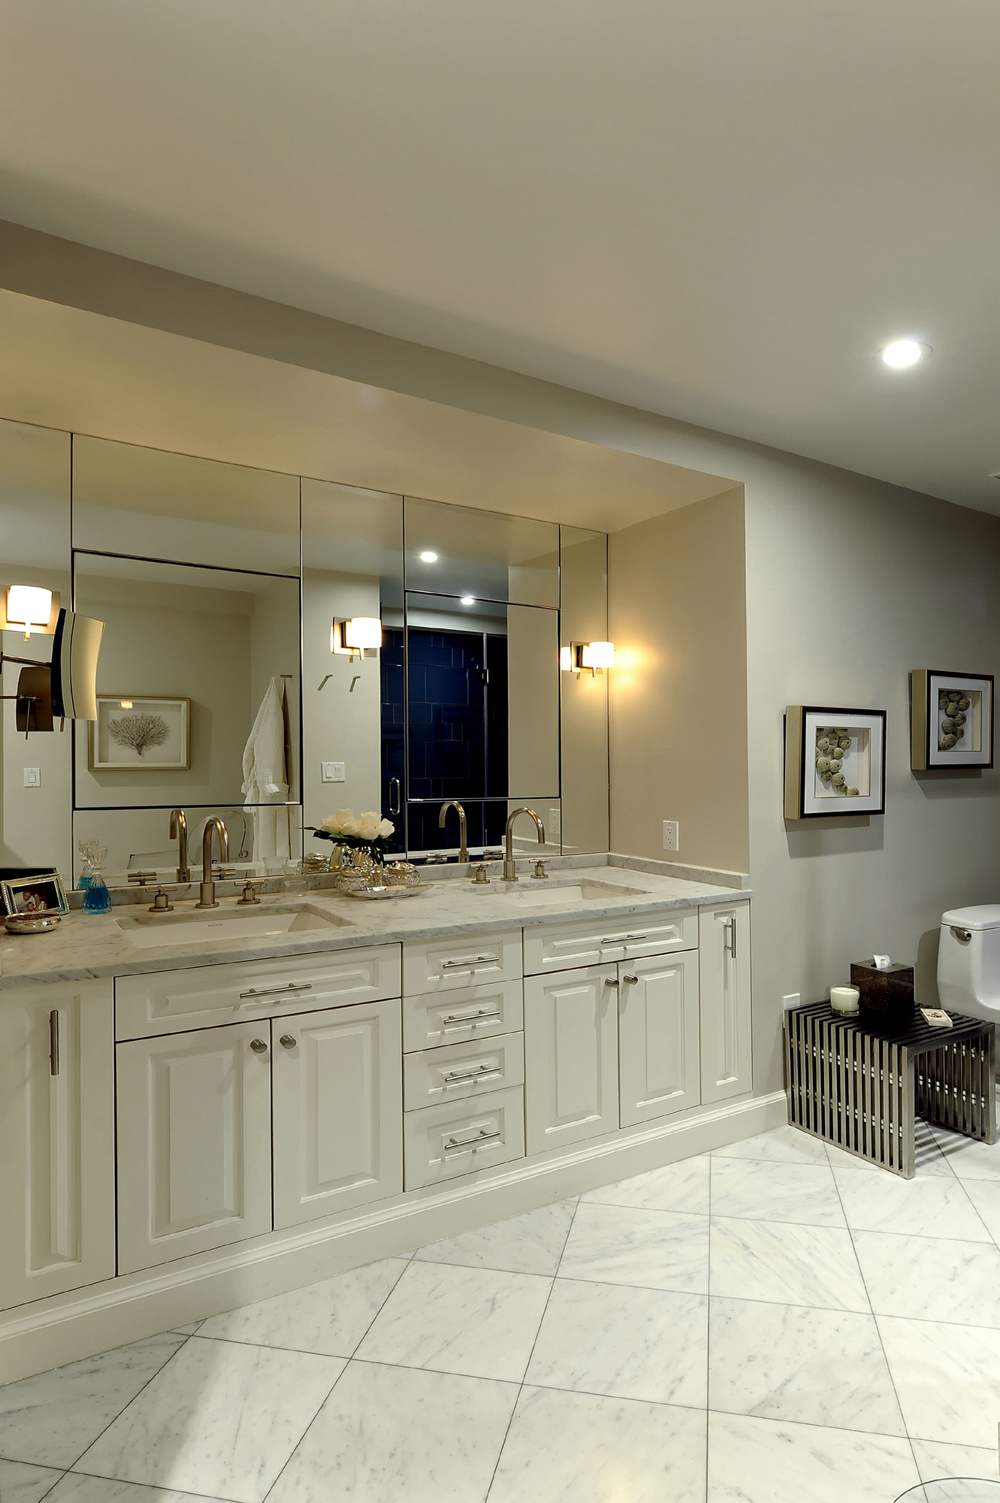 Northwest Washington DC Condominium Renovation BOWA - Condo bathroom renovation